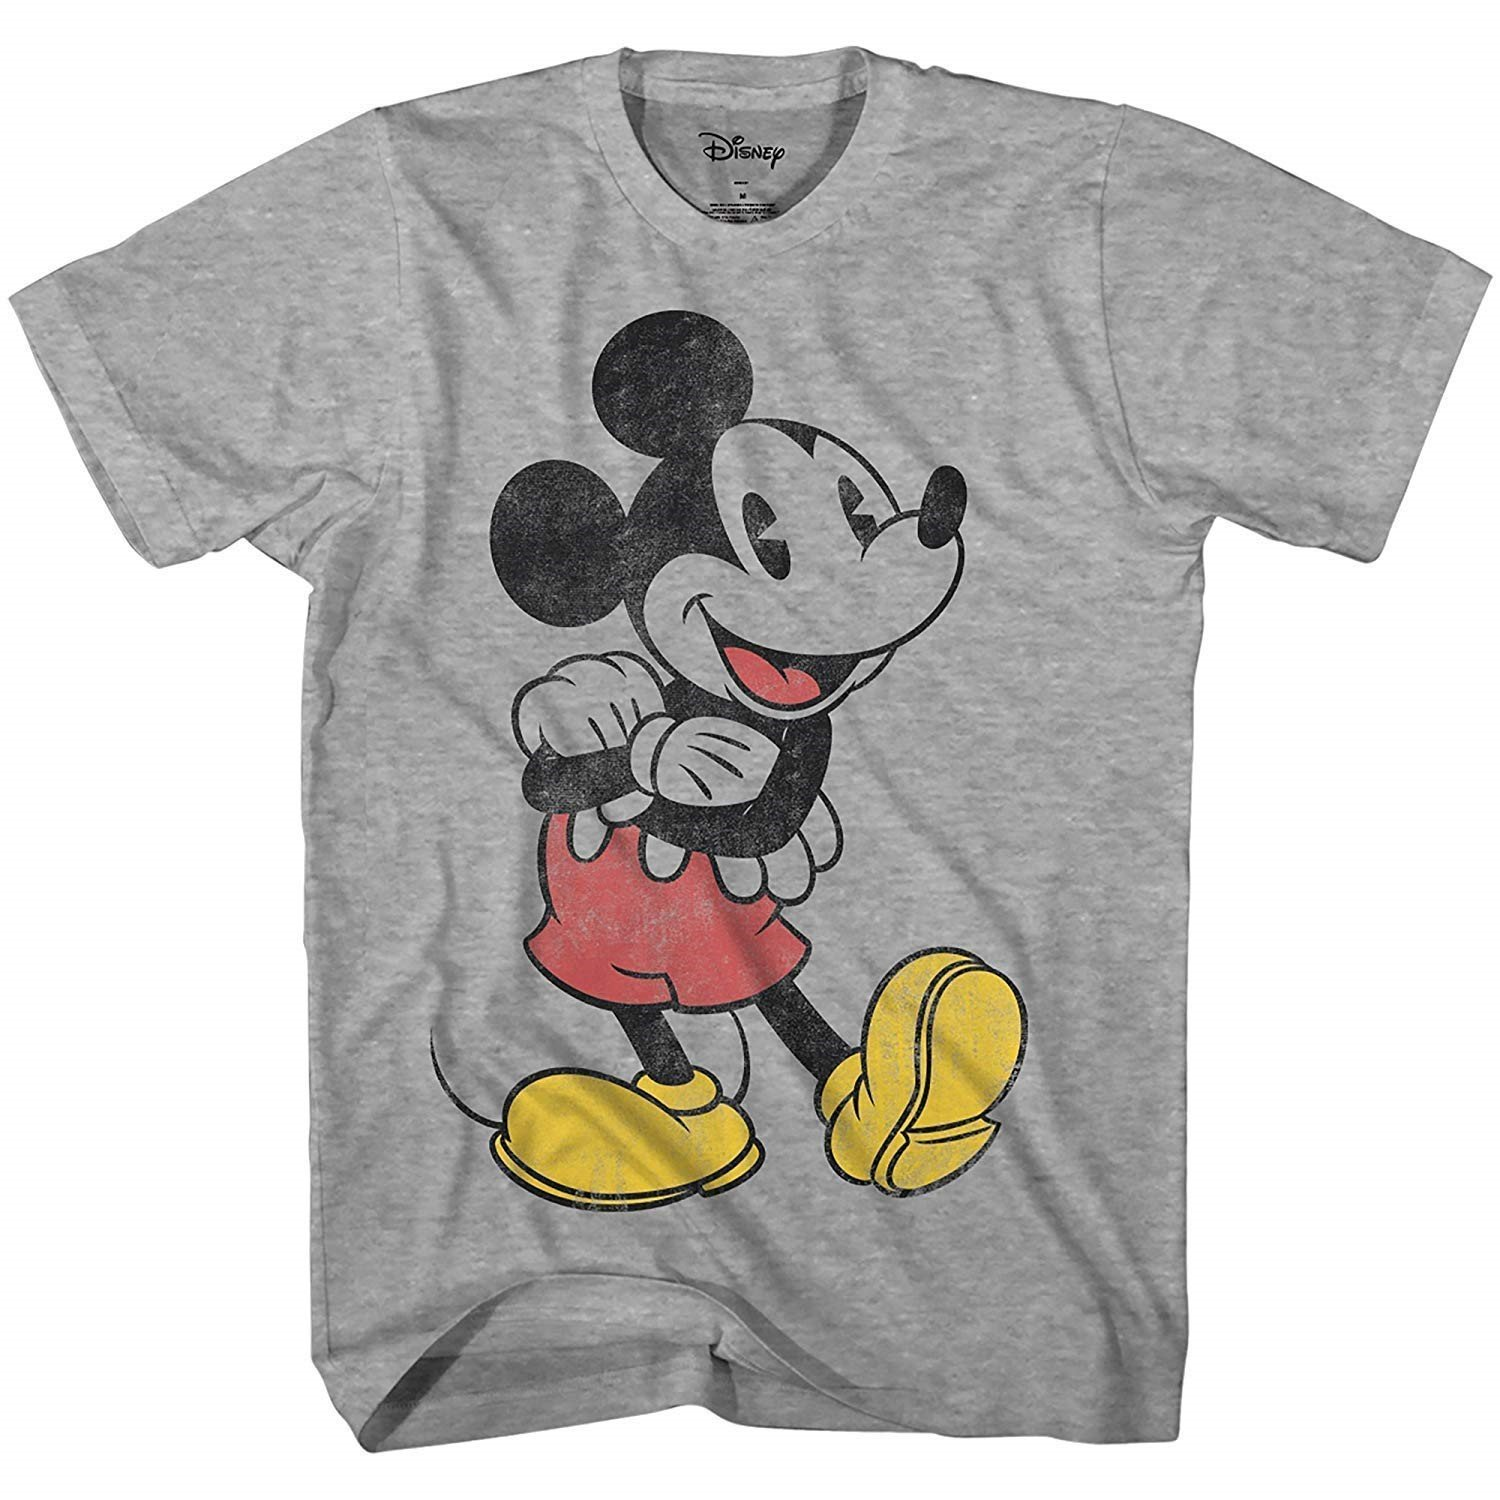 Disney Mickey Mouse Lean Forward Disneyland World Retro Classic Vintage Tee Funny Humor Adult Mens Graphic T-Shirt Apparel